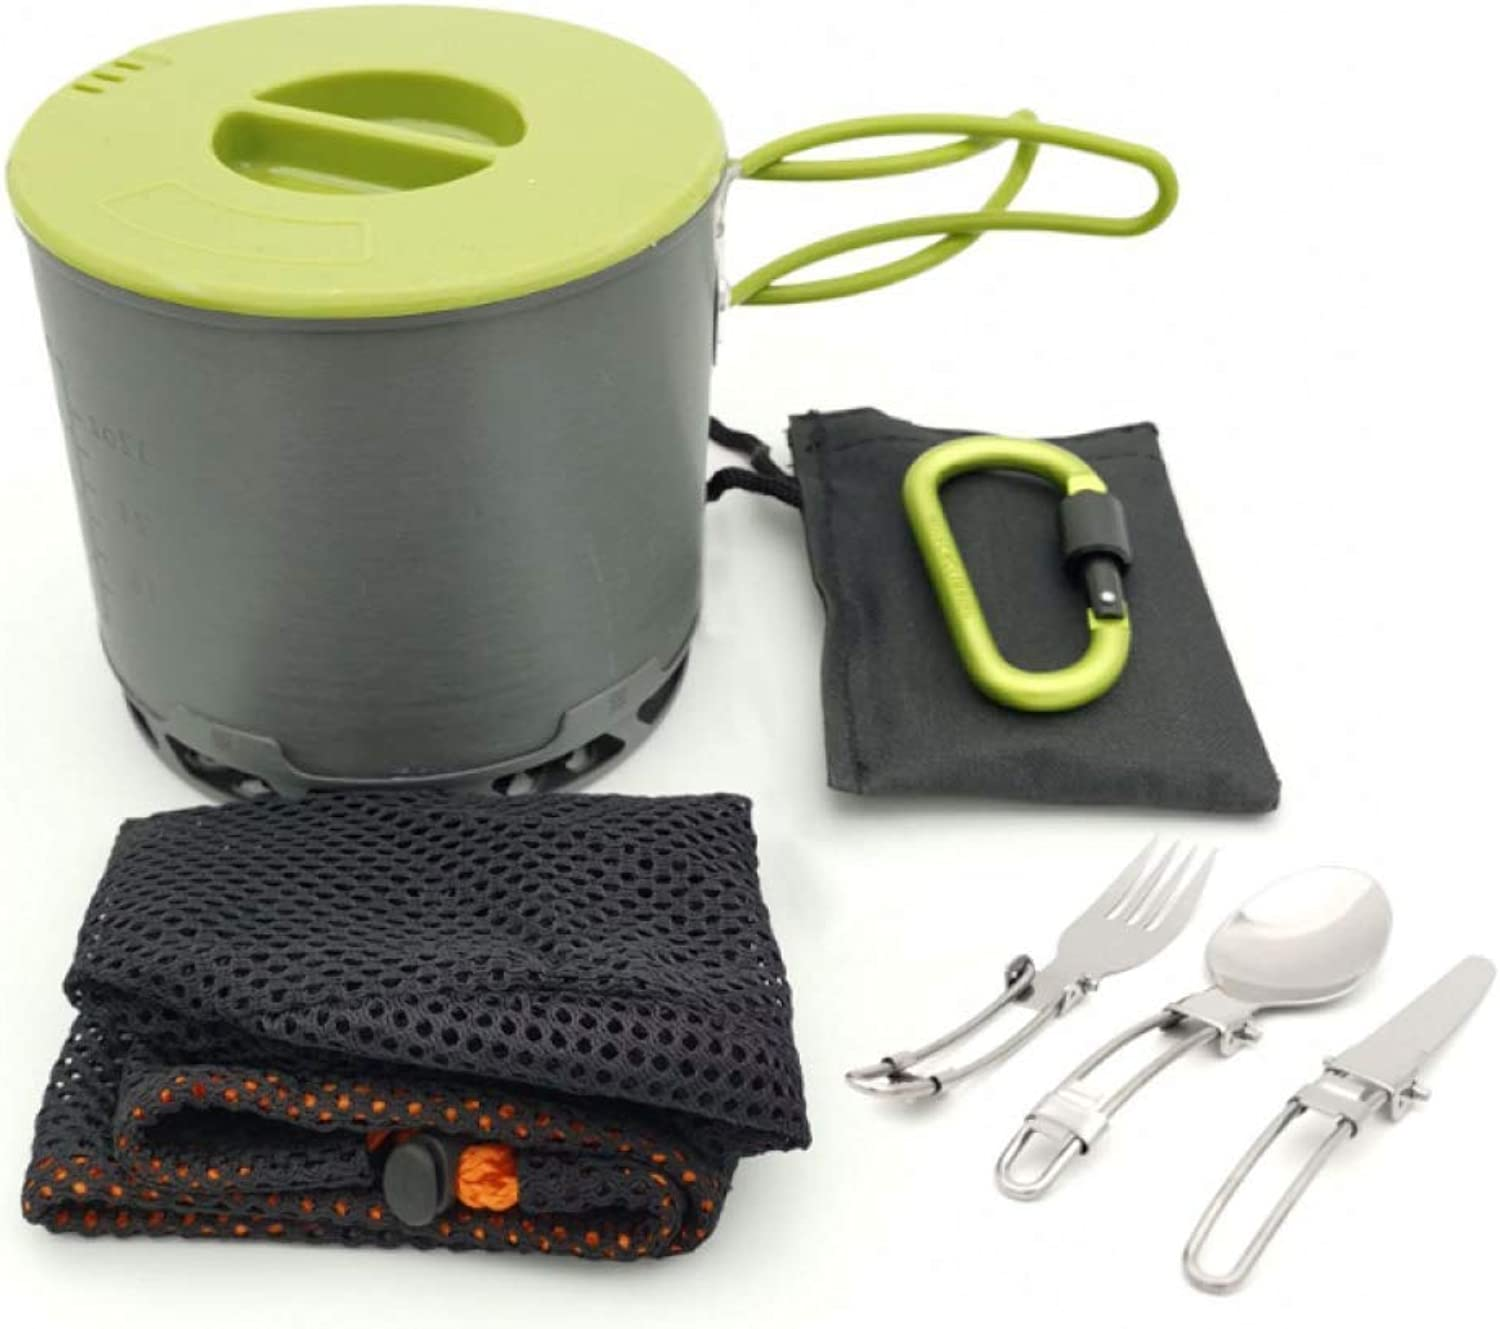 MTK Camping Pot, Portable Outdoor Set Hot Ring Pot, 1-2 People Camping Cooker, Suitable for Camping Hiking Barbecue Picnic